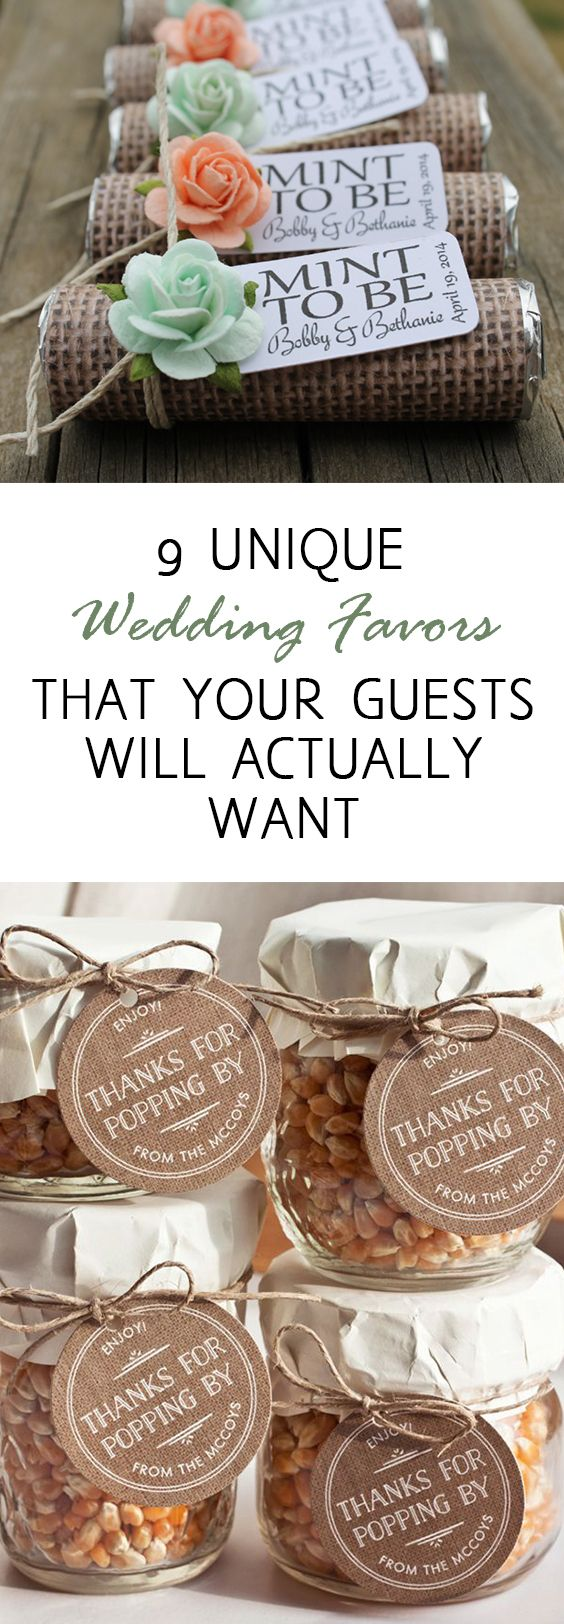 200+ best Wedding images on Pinterest | Dessert tables, Weddings and ...